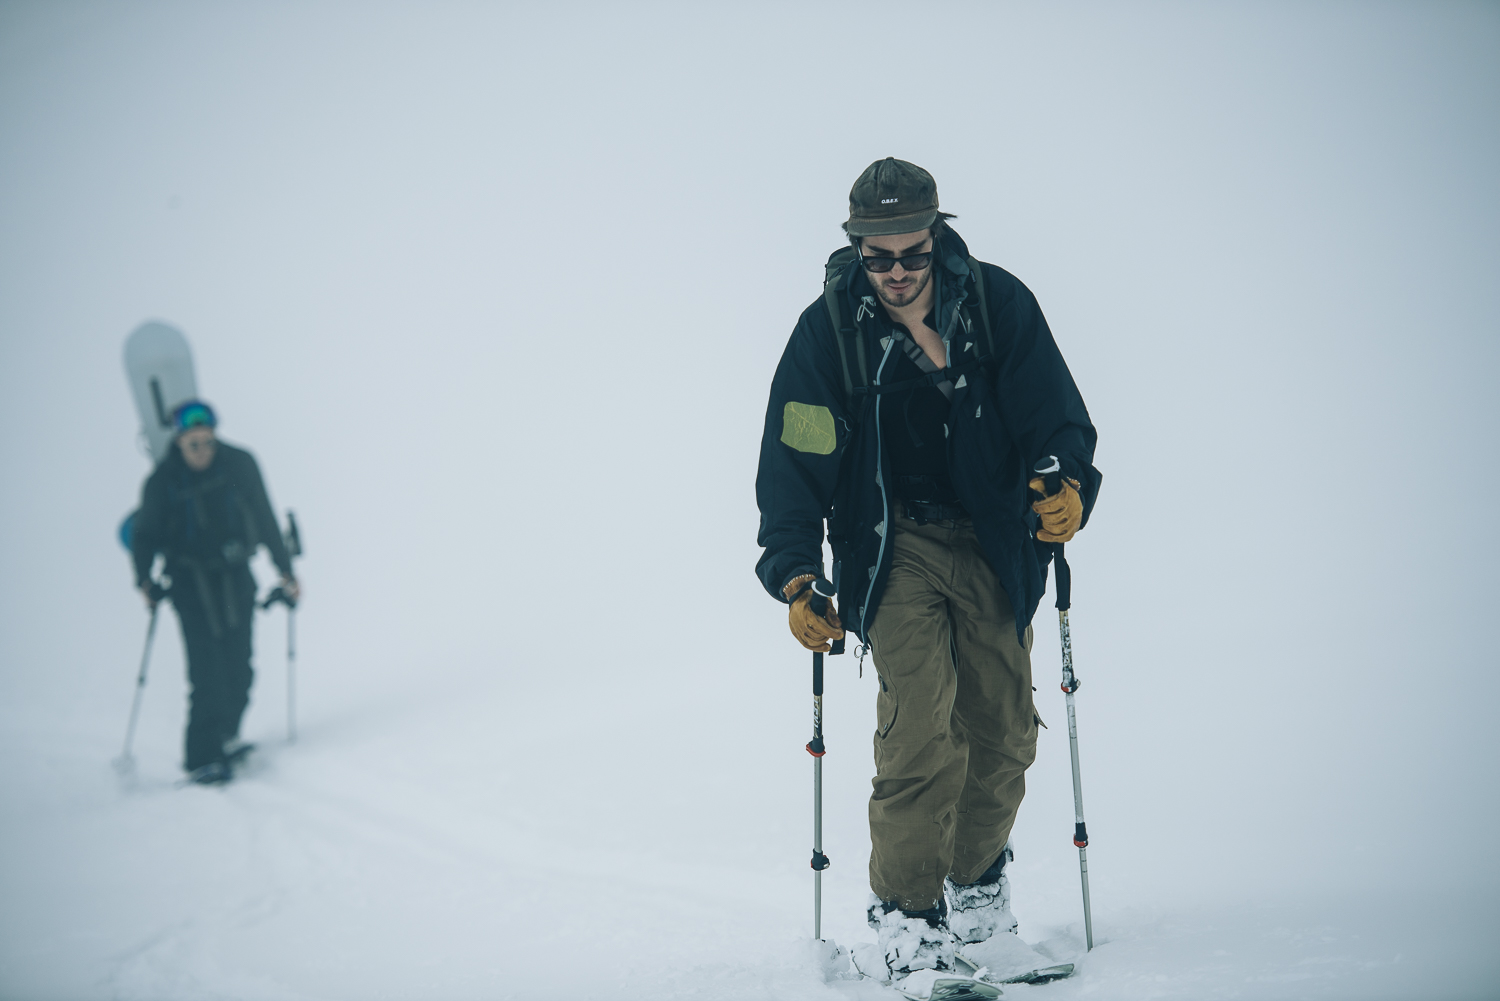 On the way up, visibility was still relatively far